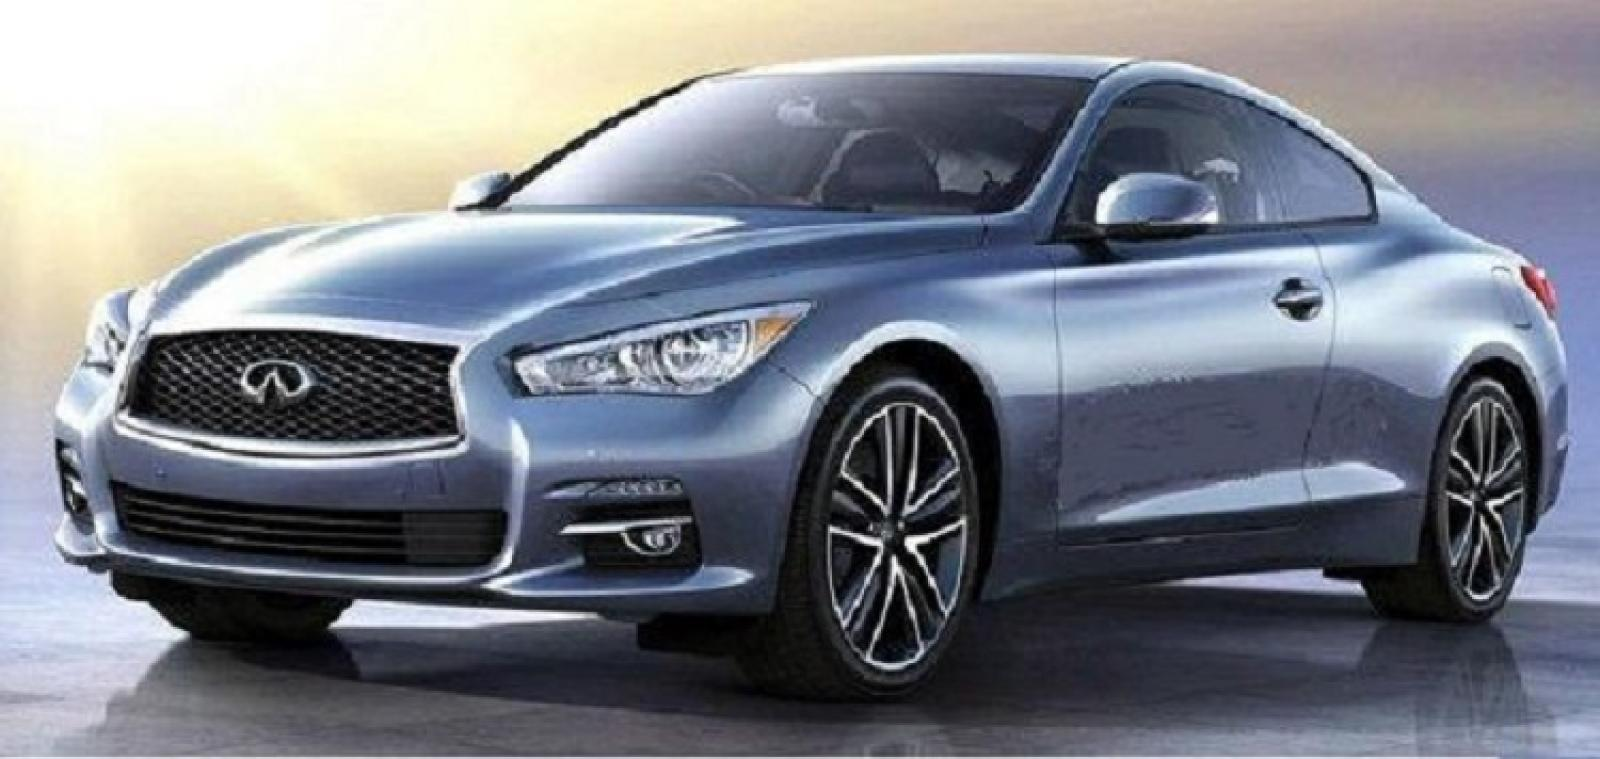 2015 infiniti q60 coupe information and photos zombiedrive 800 1024 1280 1600 origin 2015 infiniti vanachro Image collections